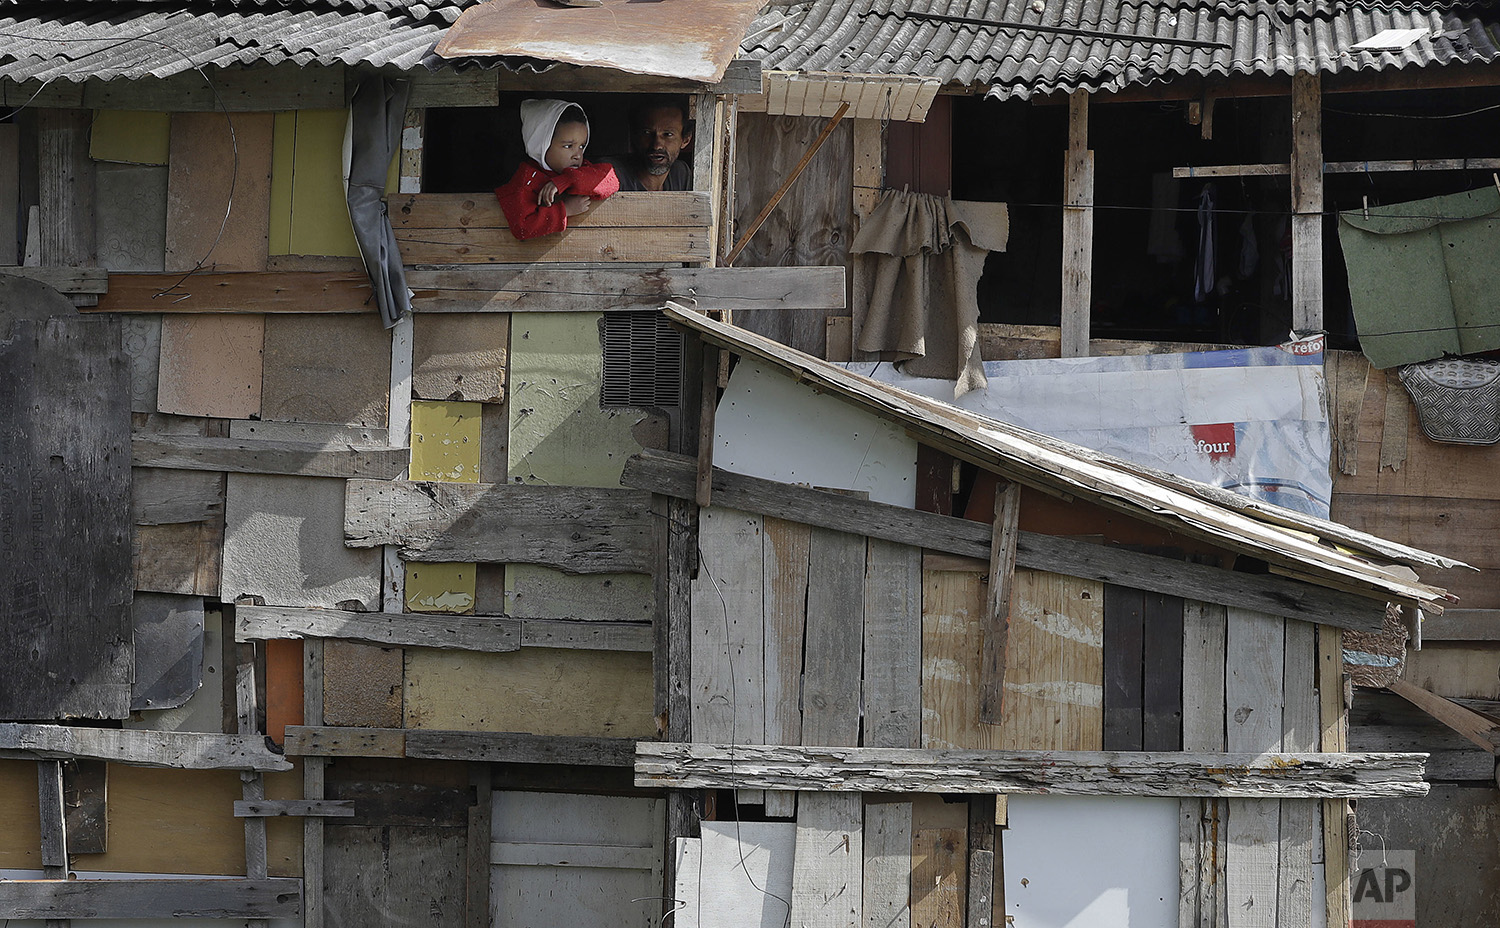 A boy peers from his home's window as firefighters extinguish the last flames of a nearby fire in the Osasco neighborhood of the greater Sao Paulo area of Brazil, Monday, July 3, 2017. (AP Photo/Andre Penner)